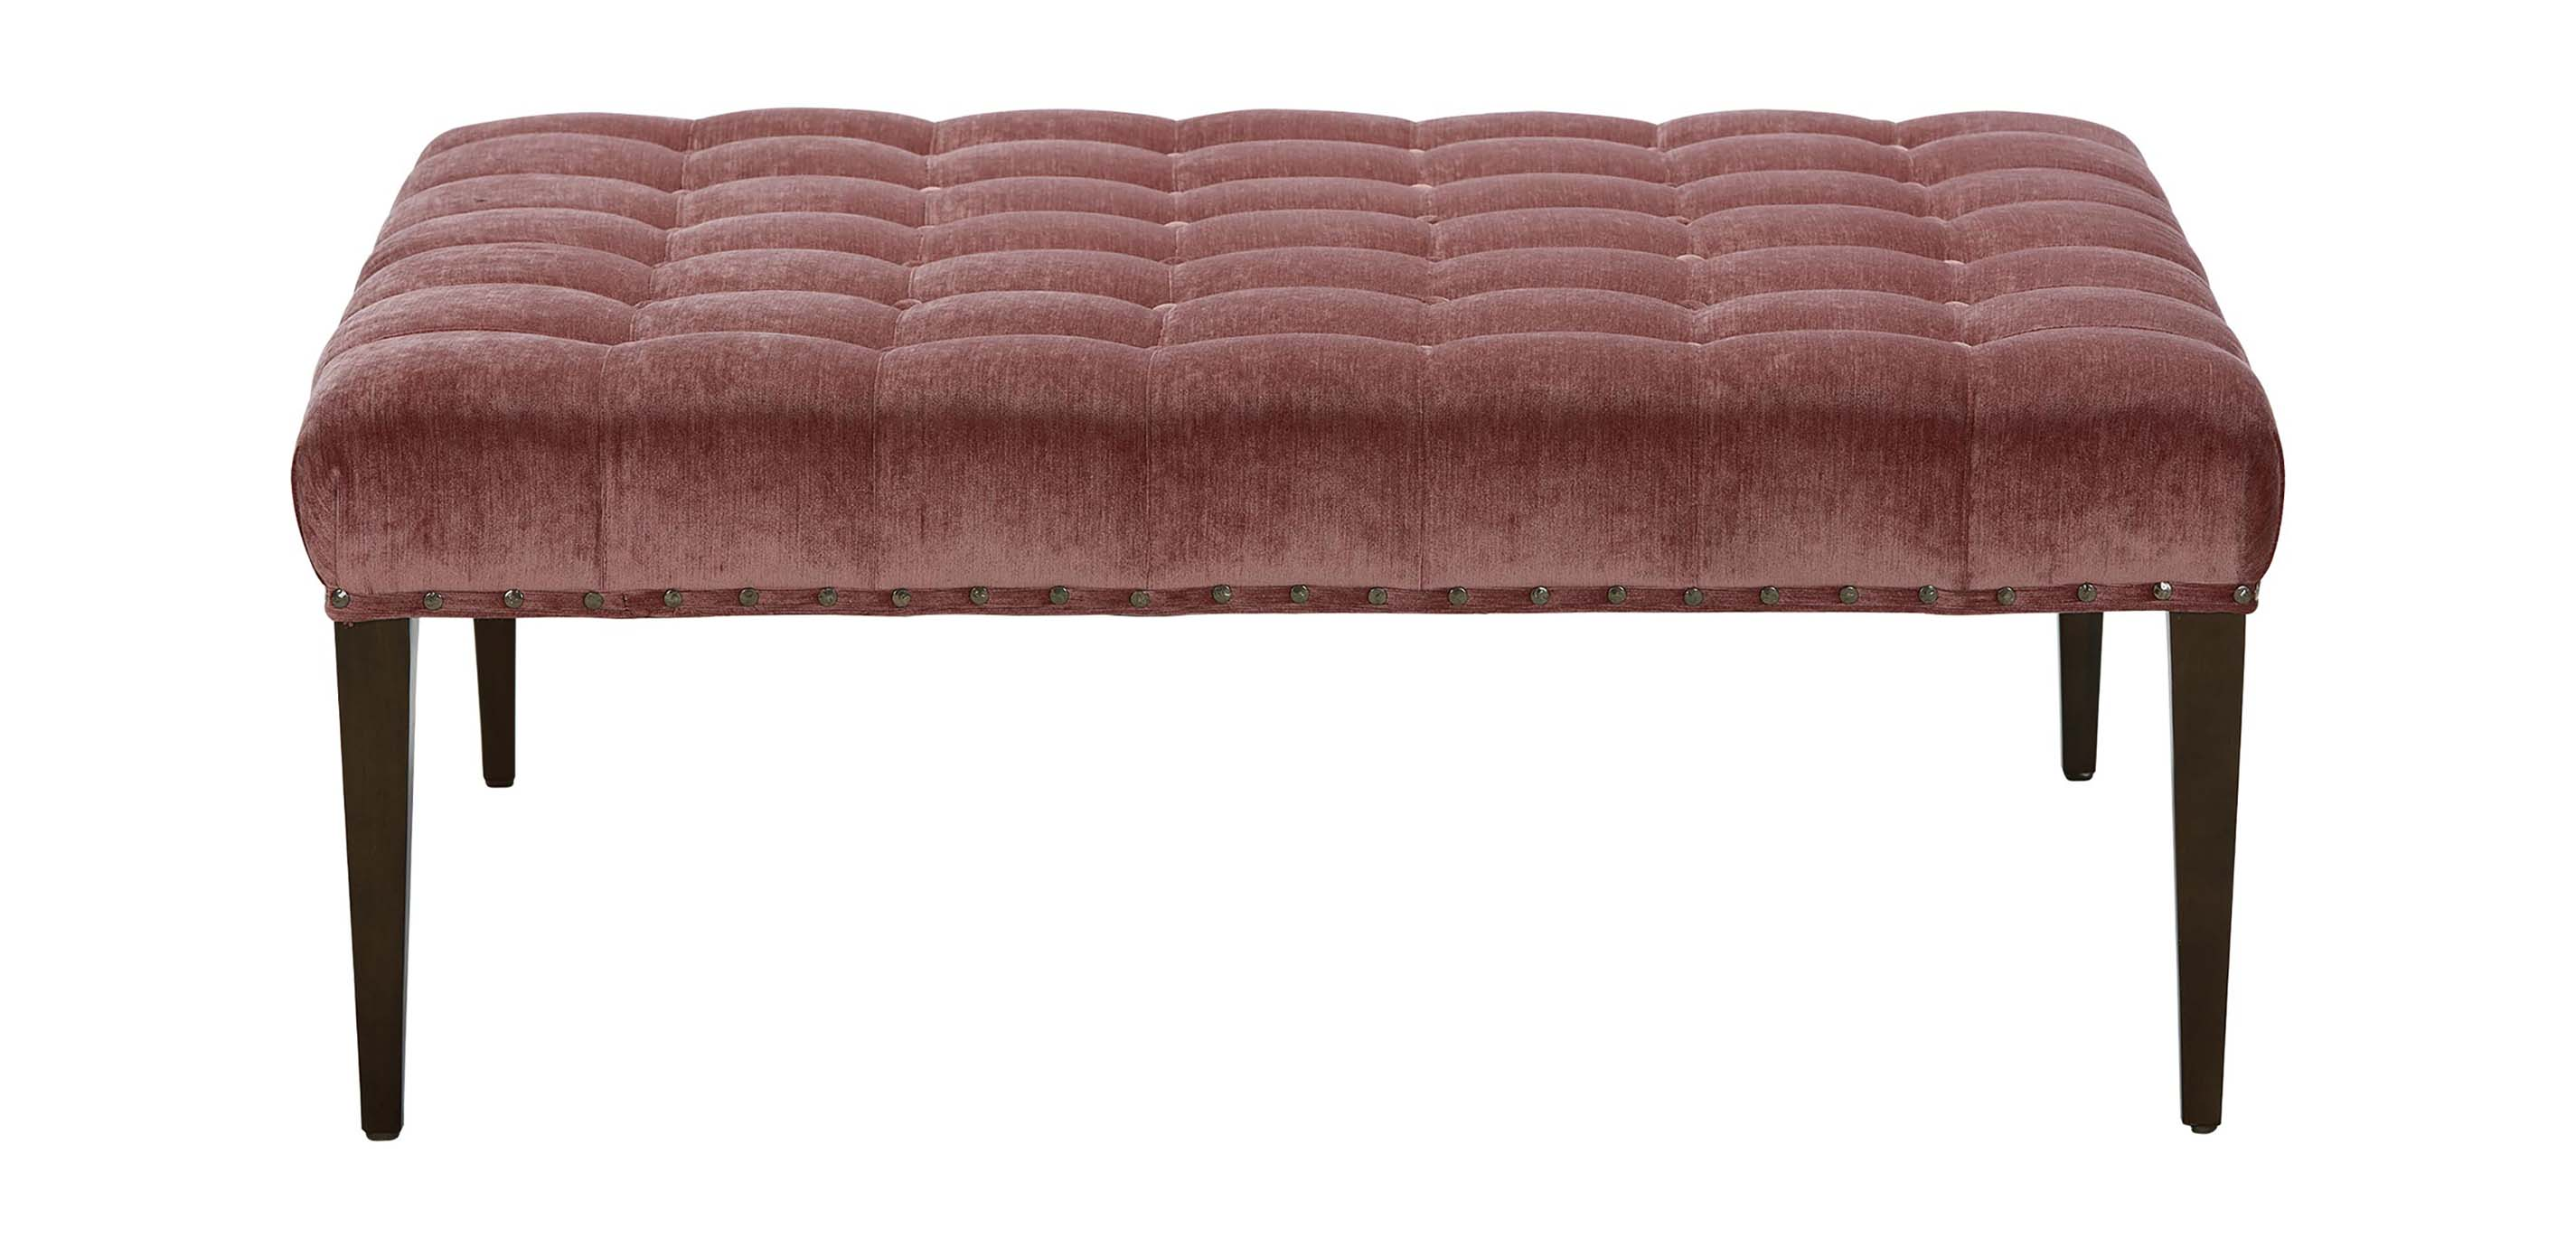 square item number furniture cocktail products corinthian miskelly ottomans ottoman